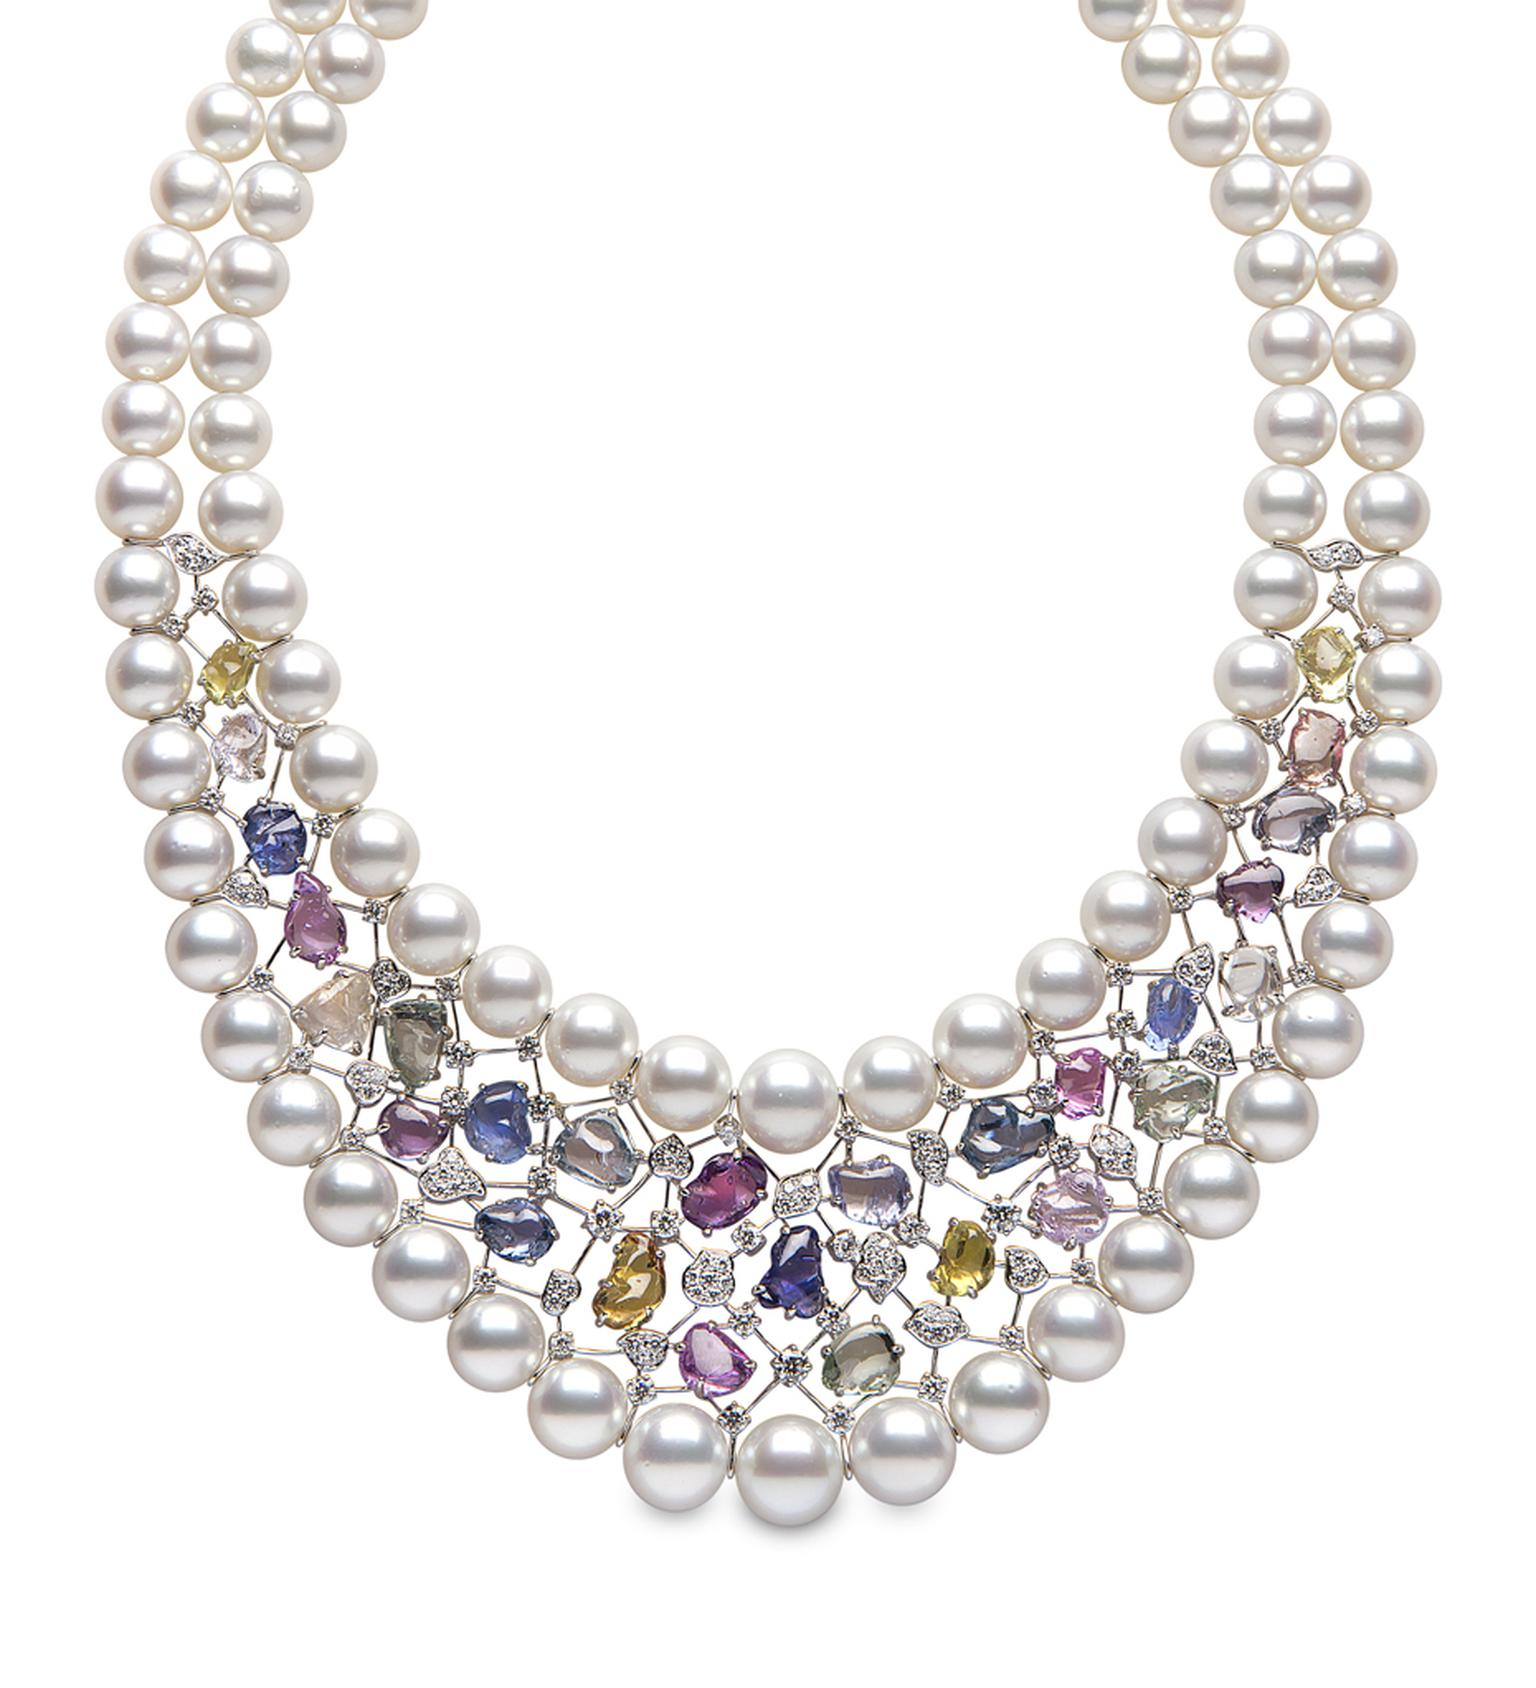 Yoko London white gold Aurora necklace from the Masterpiece collection featuring Australian South Sea pearls, multi-coloured sapphires and diamonds